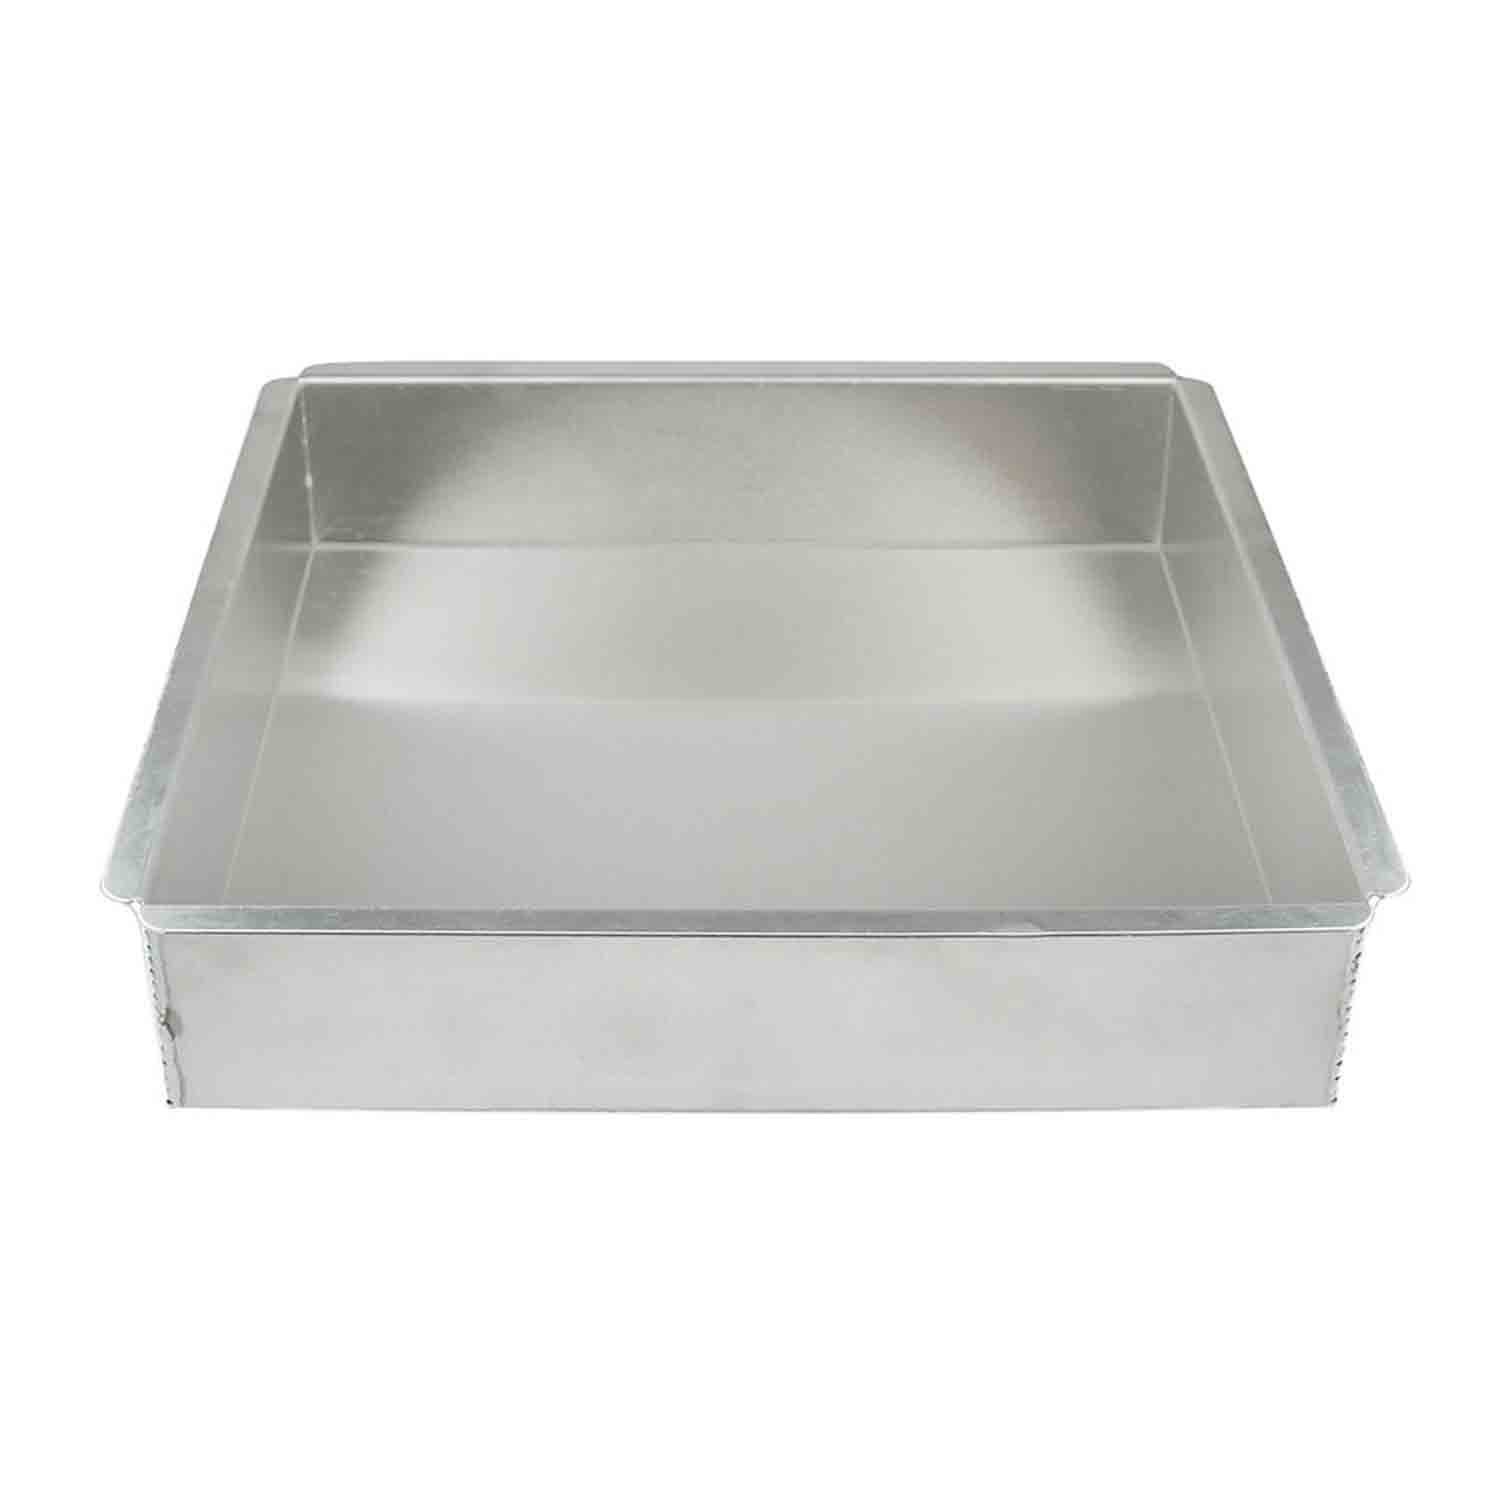 "14 x 3"" Magic Line Square Cake Pan"